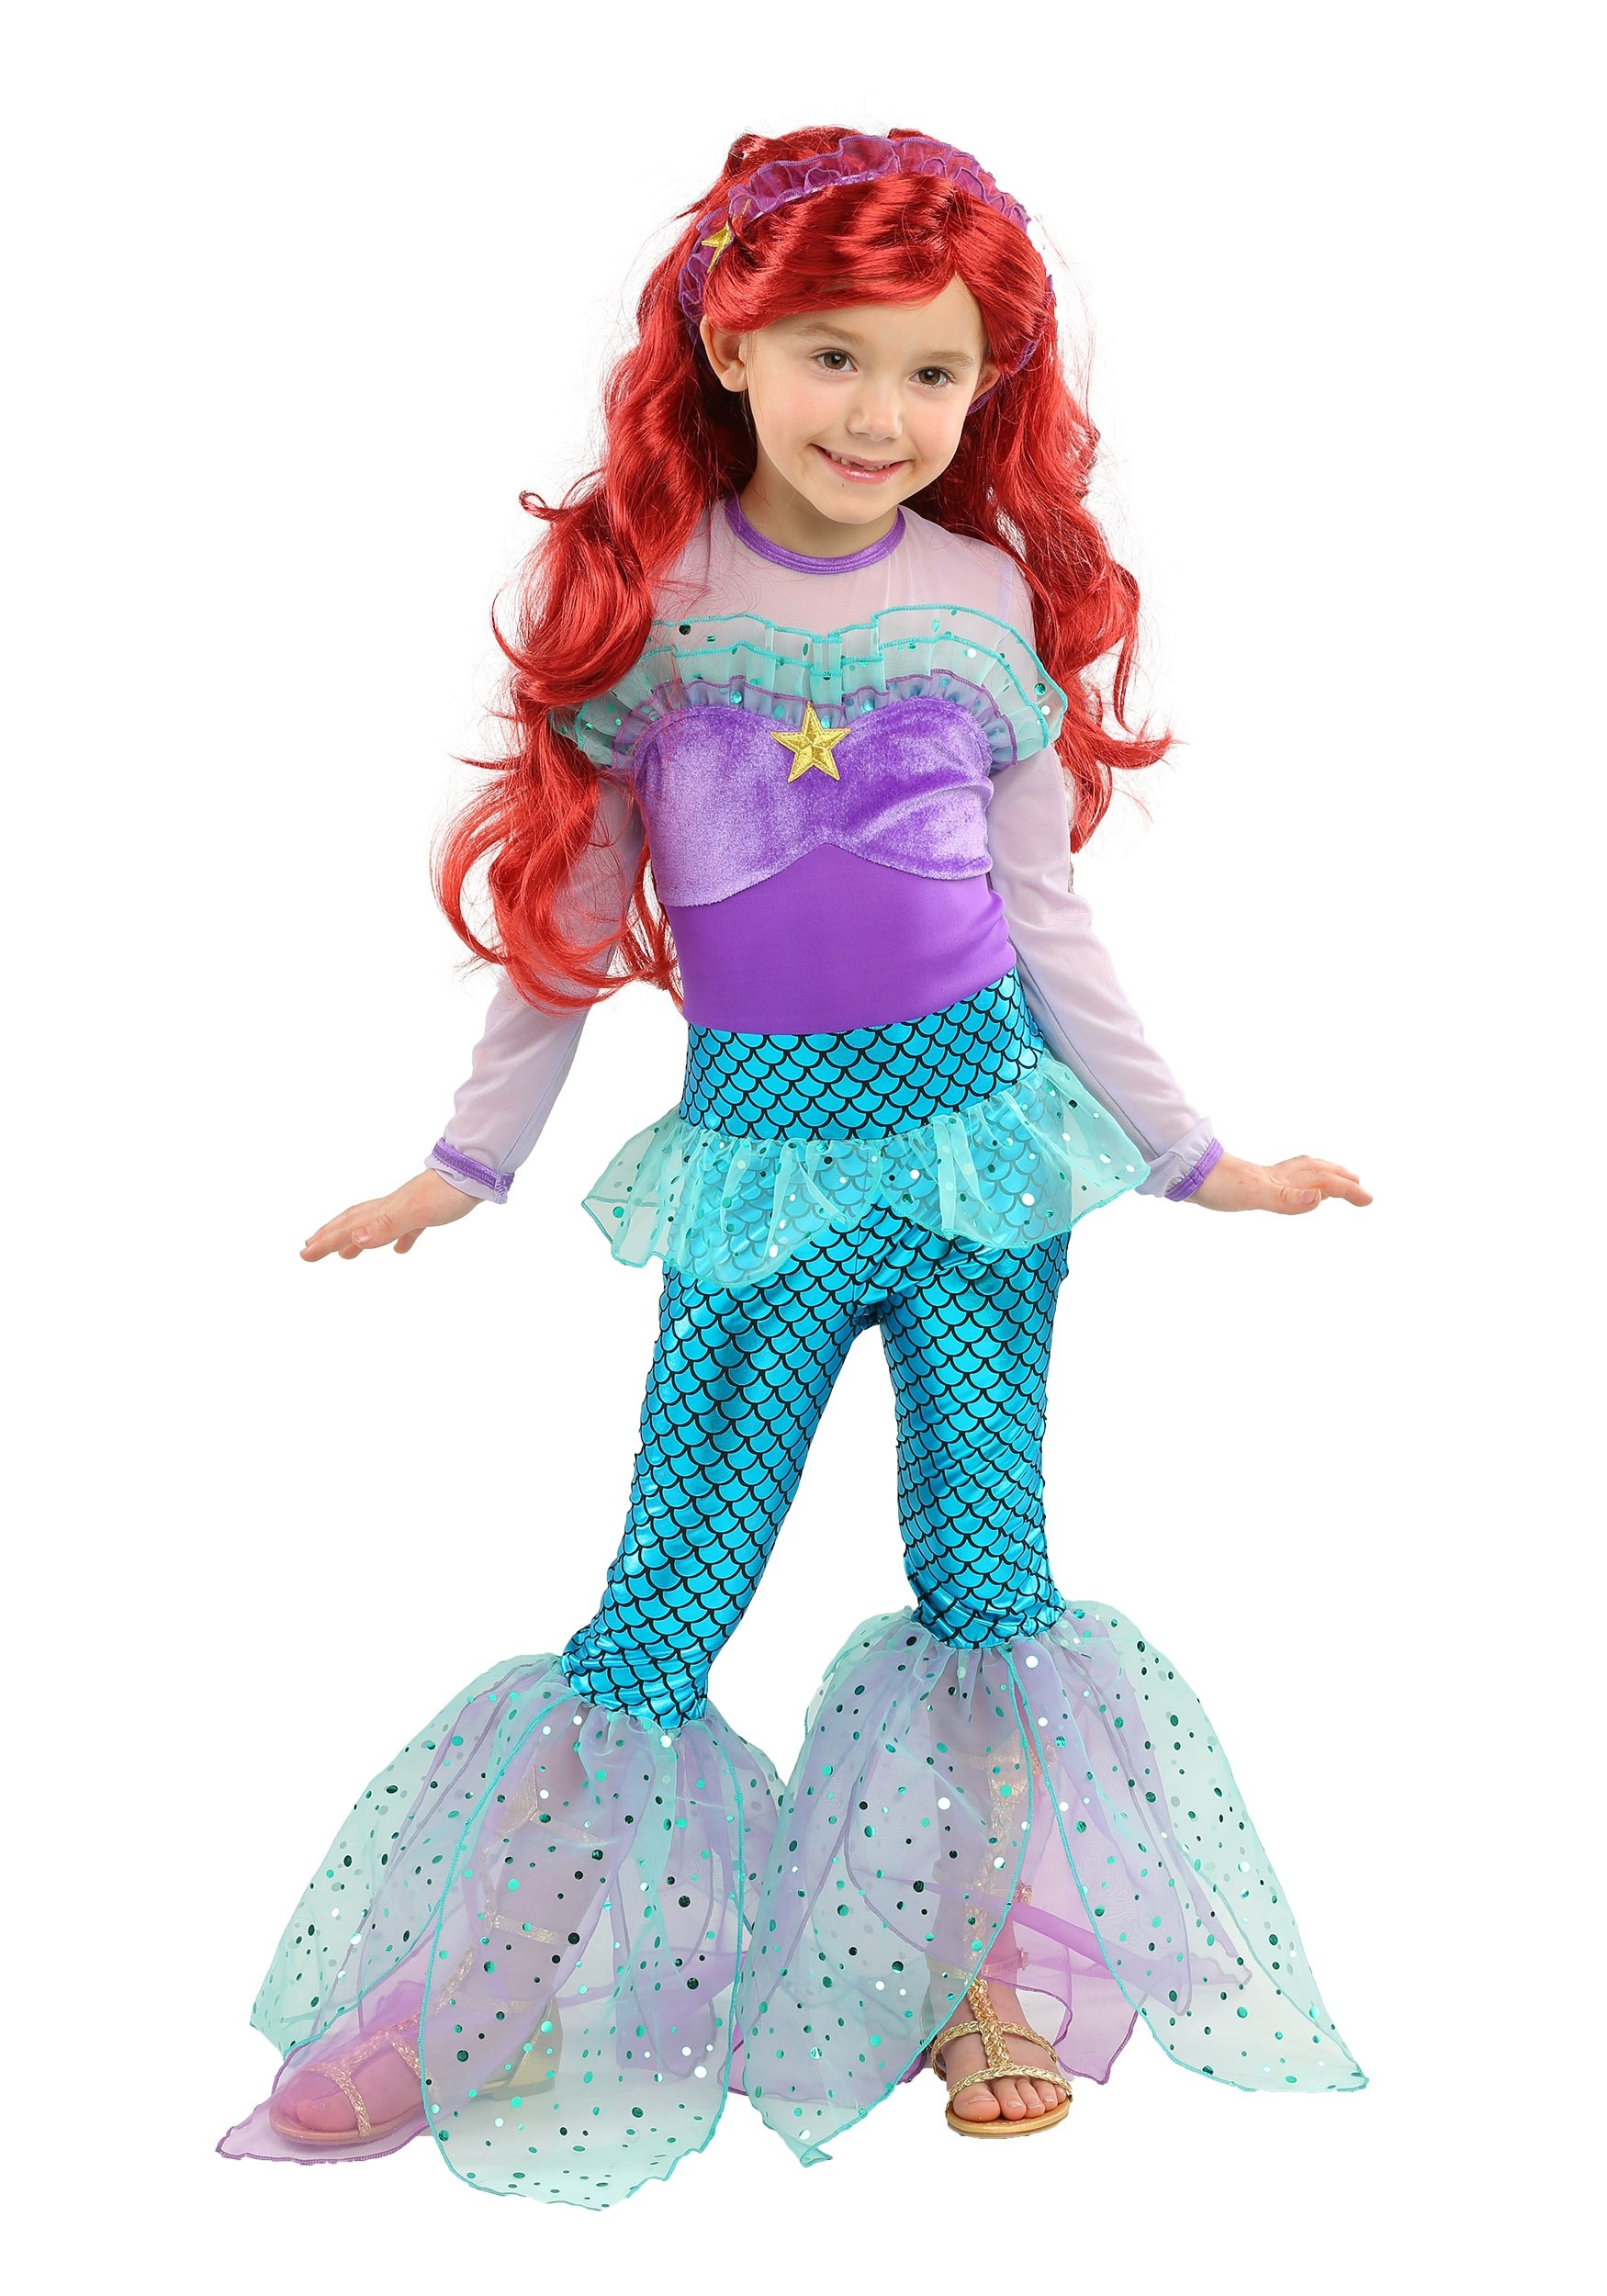 72a43102e8 Mermaid Costumes - Adult, Kids Little Mermaid Costumes